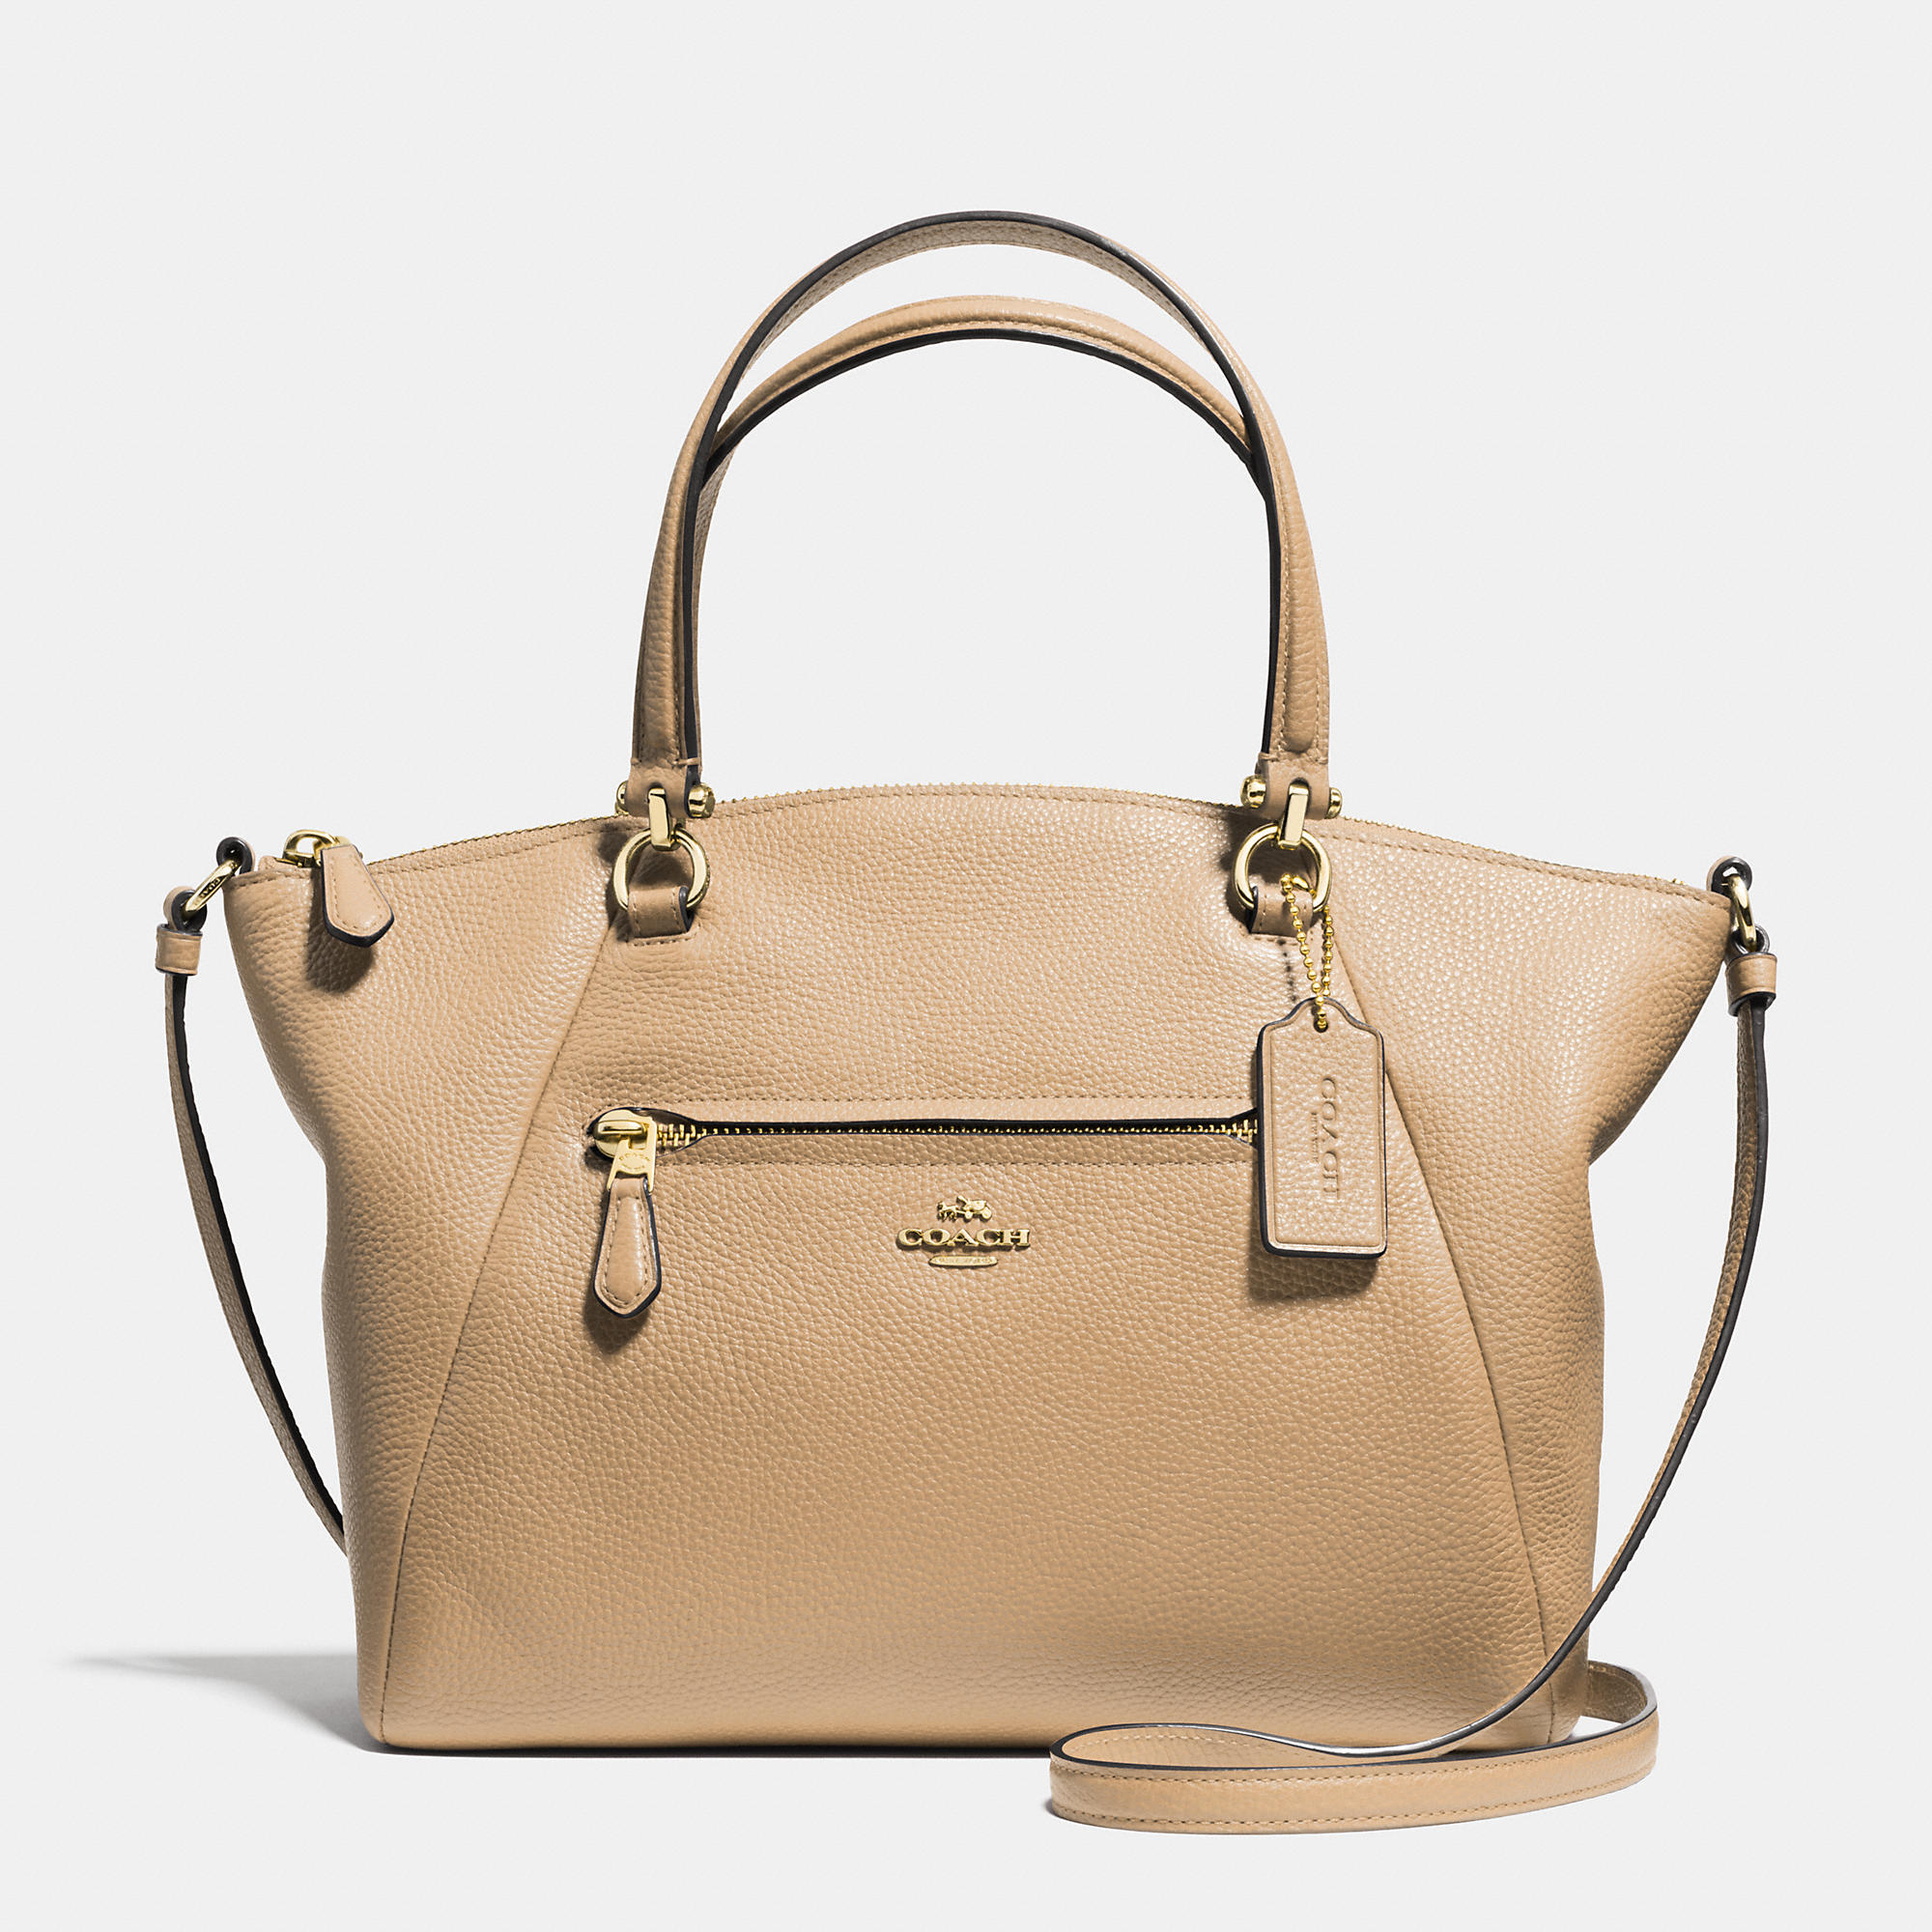 Coach Prairie Satchel In Pebble Leather in Beige (LIGHT GOLD/NUDE ...